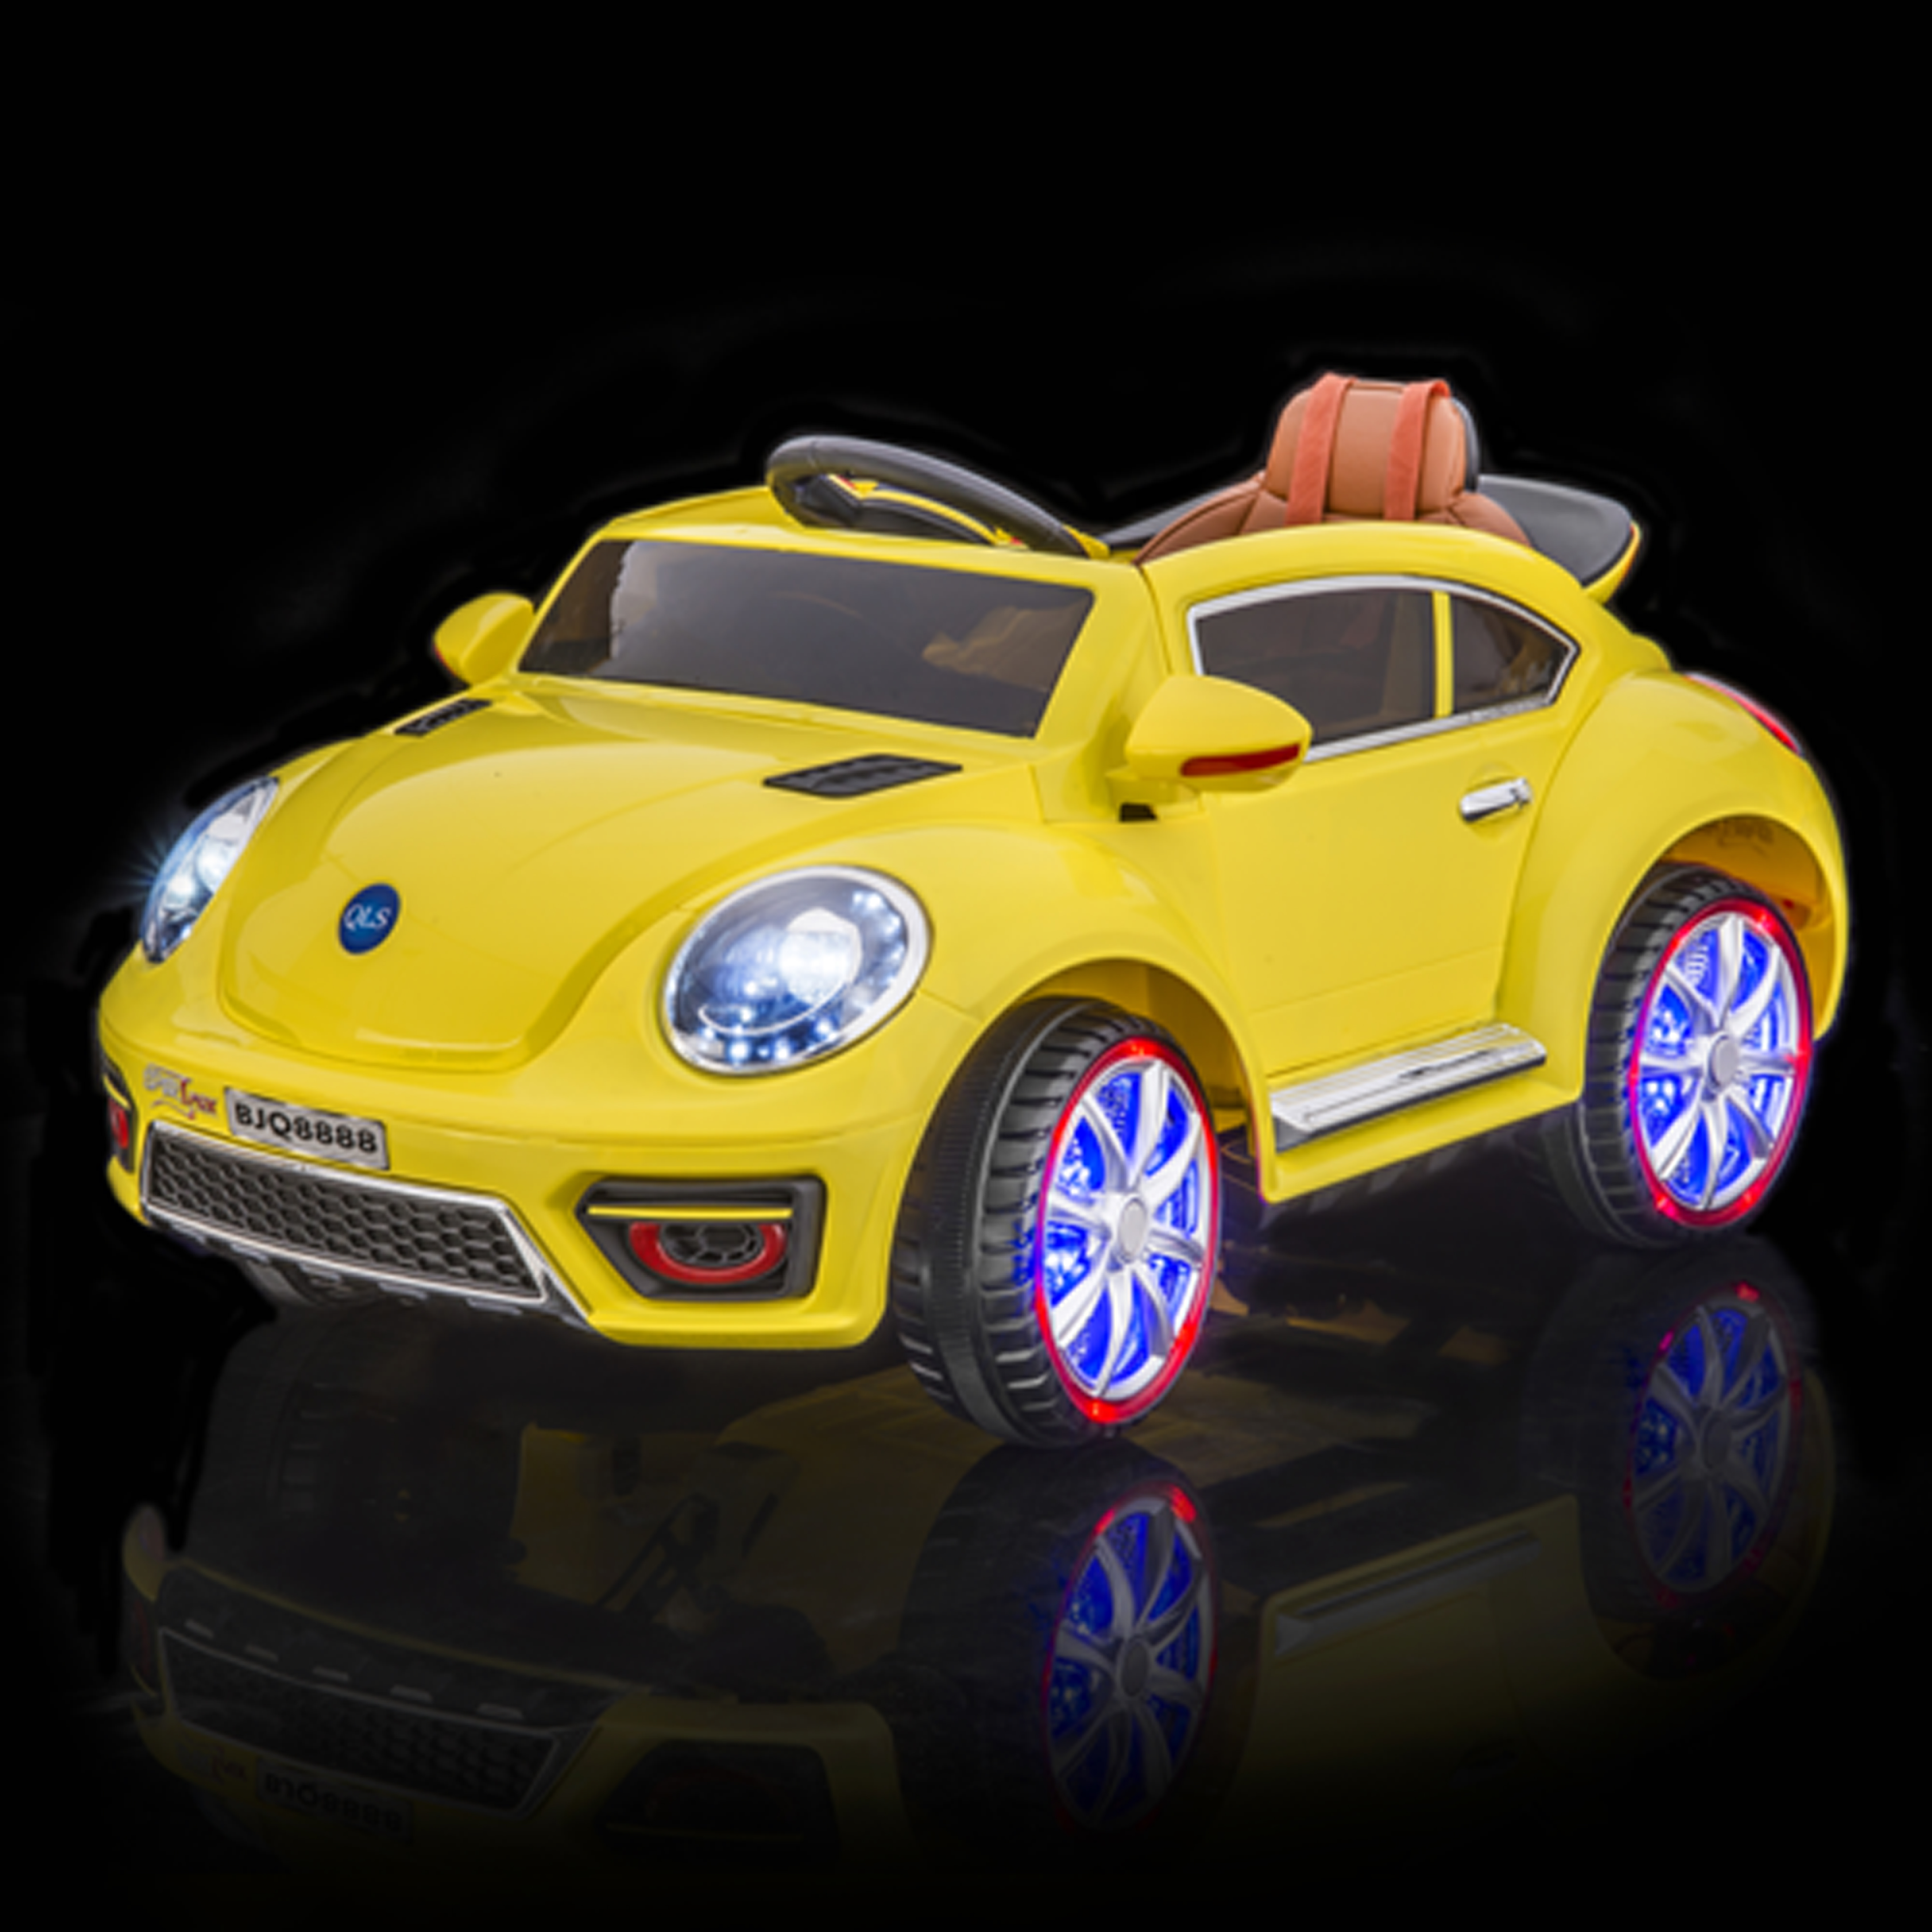 SPORTrax VW Beetle Style Kid's Ride On Car, Battery Powered, Remote Control, w/FREE MP3 Player - Yellow